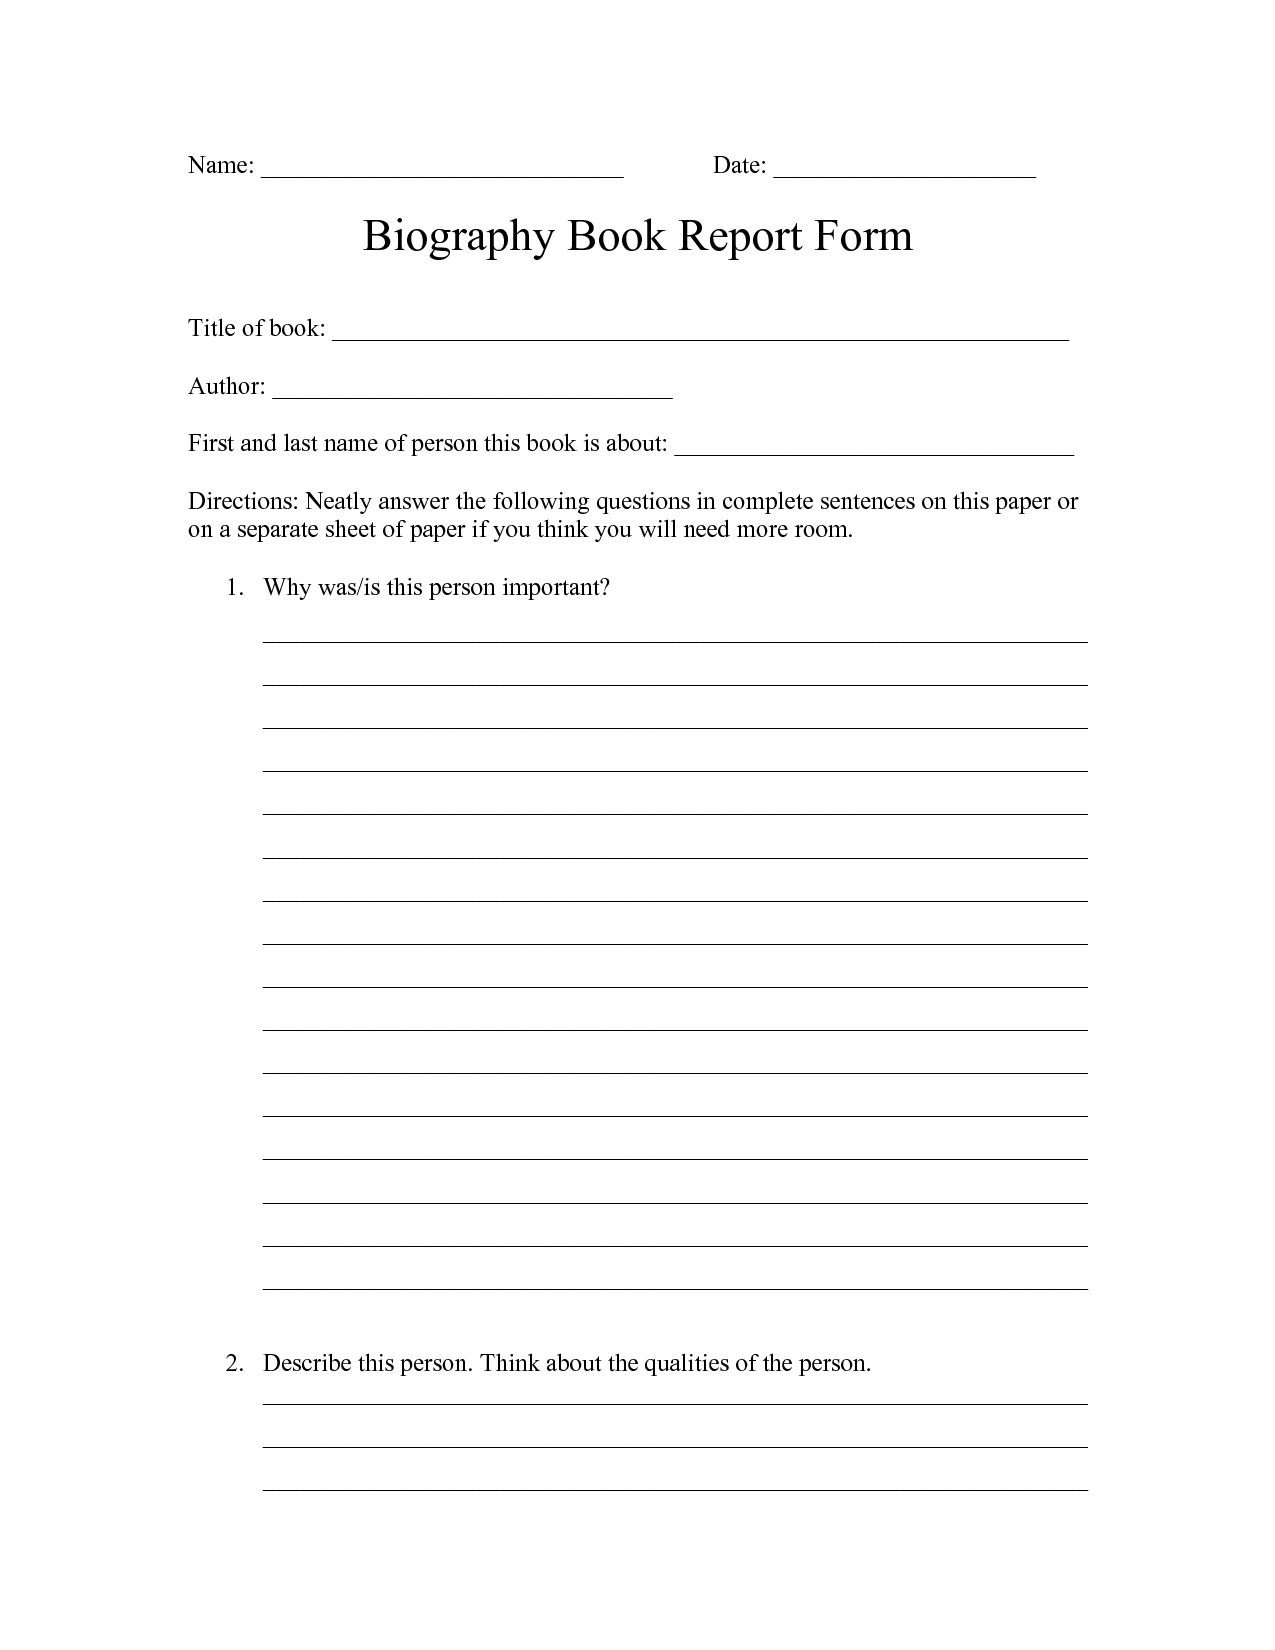 2nd Grade Biography Report Form